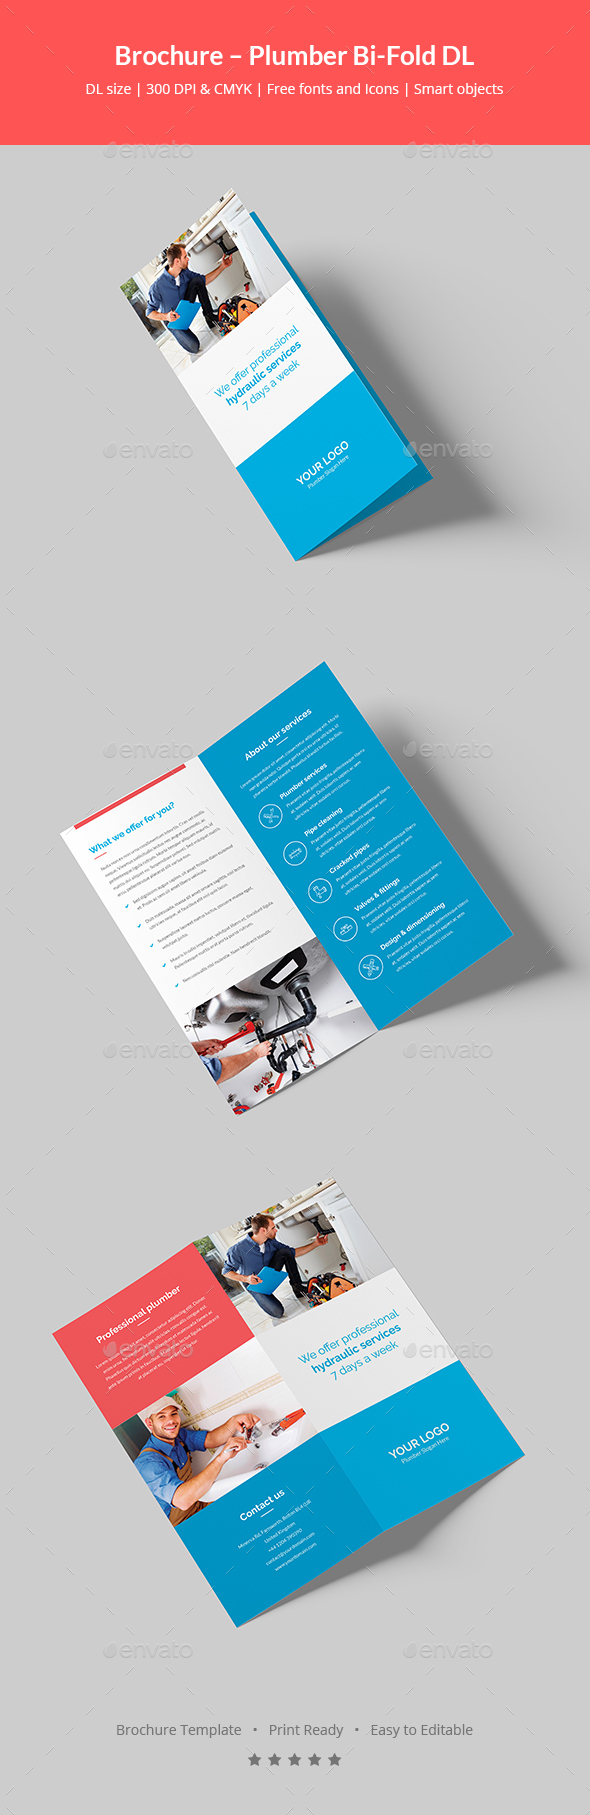 Brochure plumber bi fold dl by artbart graphicriver for Dl brochure template